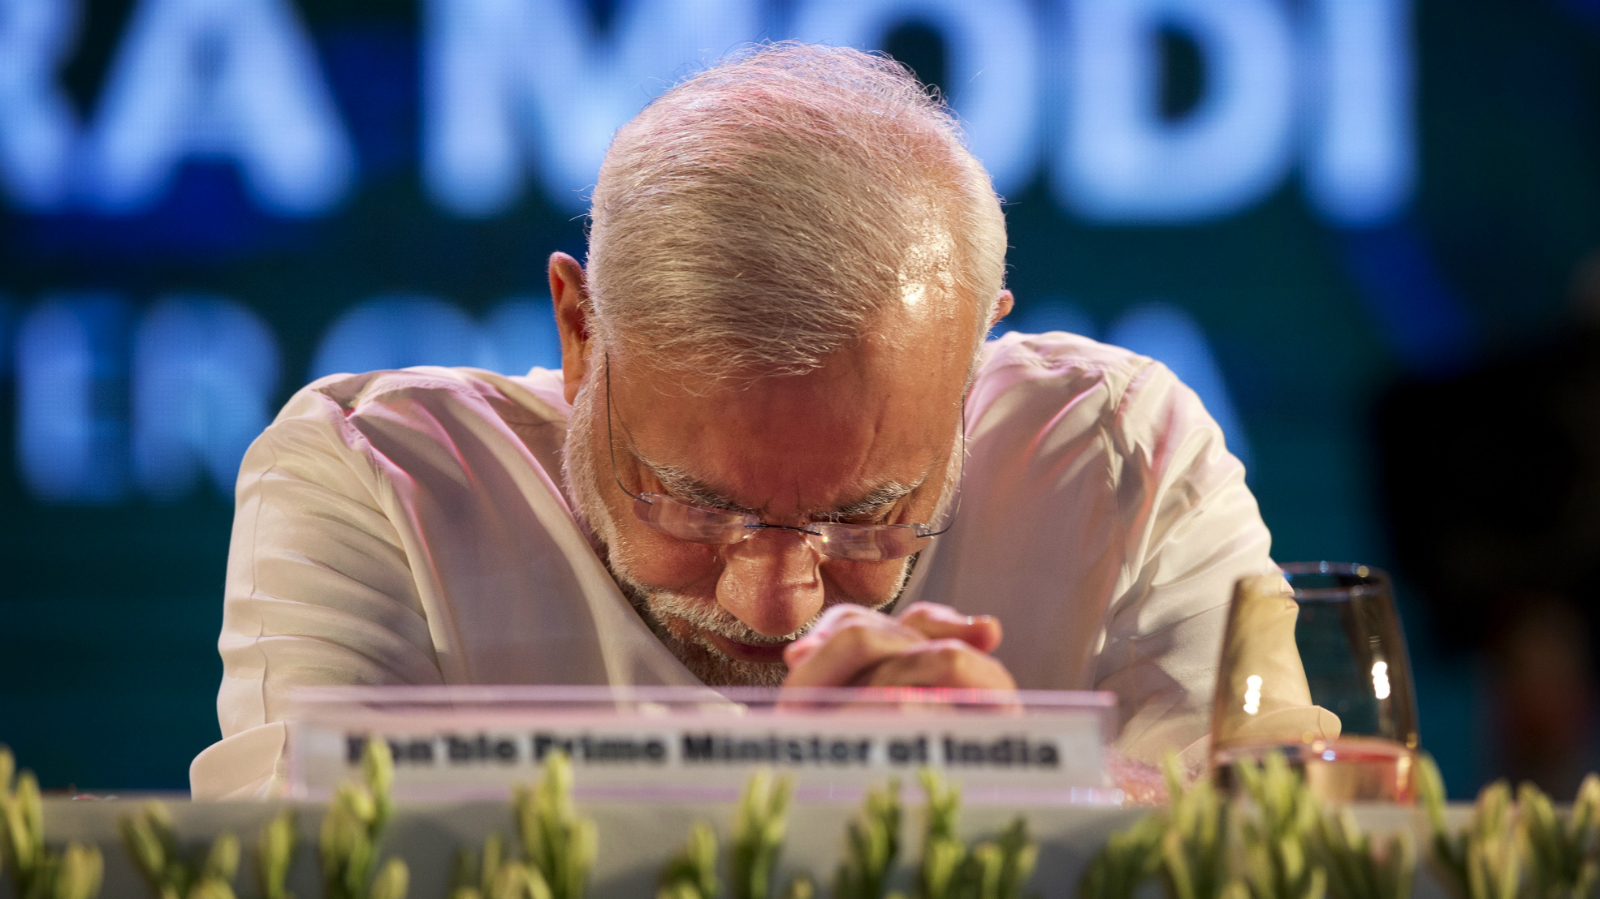 Indian Prime Minister Narendra Modi, pauses during the launch of digital India project in New Delhi, India, Wednesday, July 1, 2015. The initiative involves creating opportunities for all Indian citizens by harnessing digital technologies, to empower every citizen with access to digital services, knowledge and information.